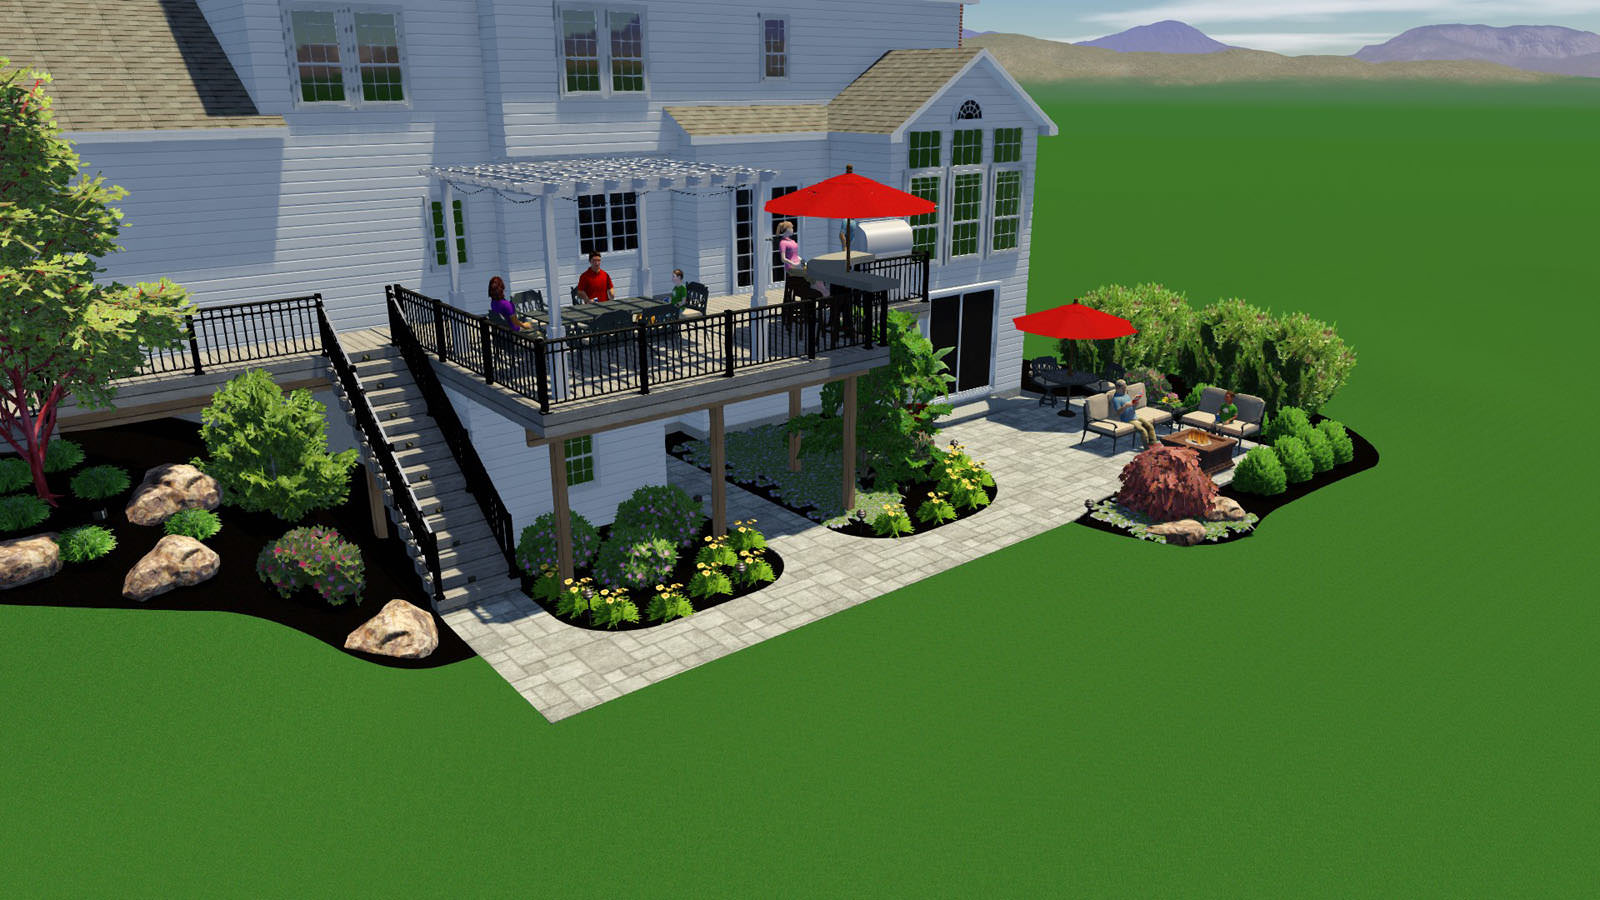 Creating the 3D full-color model of this space really helped the homeowners understand the full potential for their own backyard.